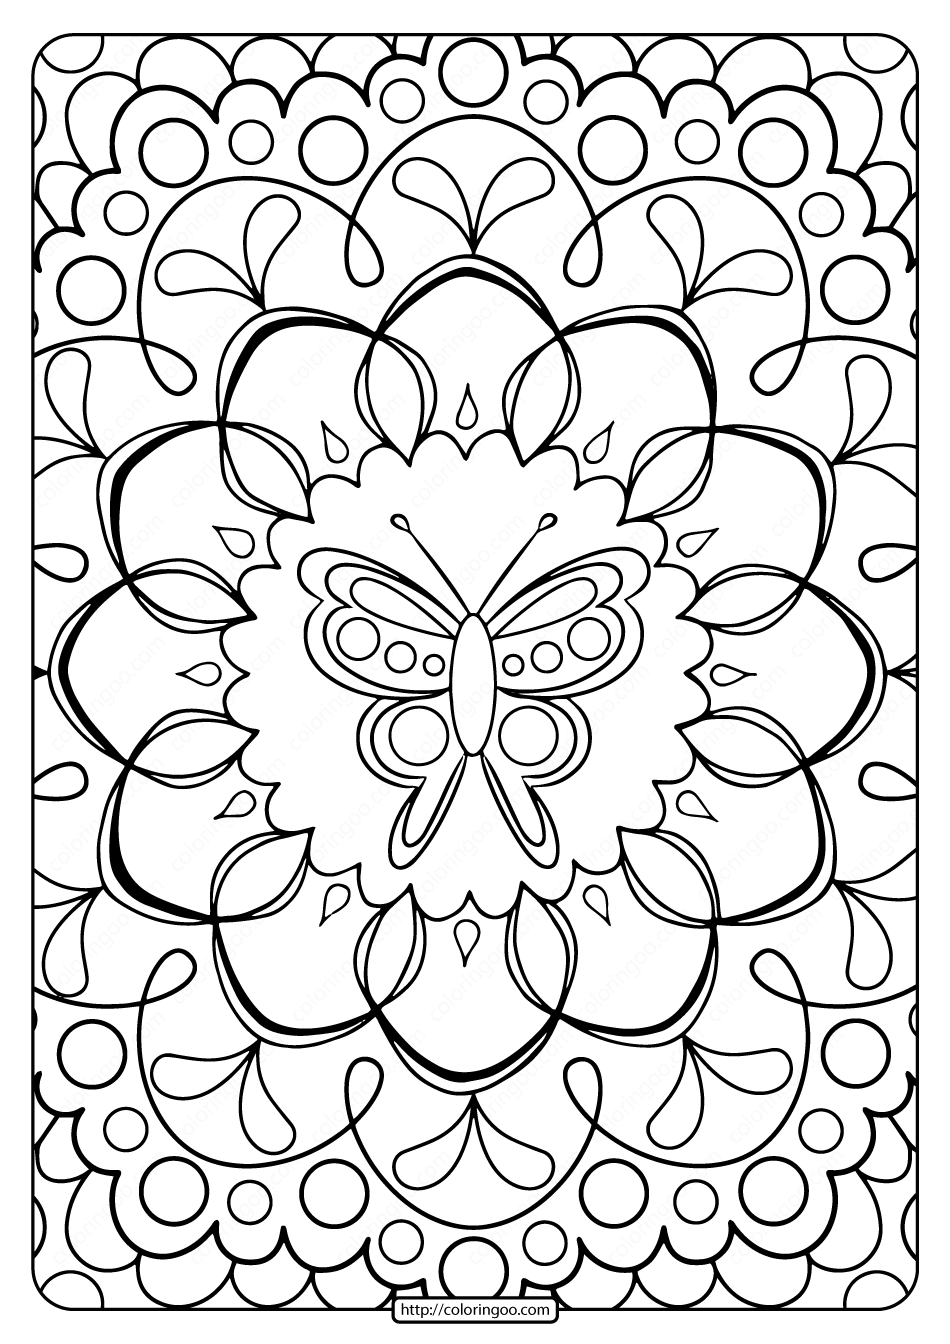 free pictures to print free printable coloring pages of cute animals coloring home free to print pictures